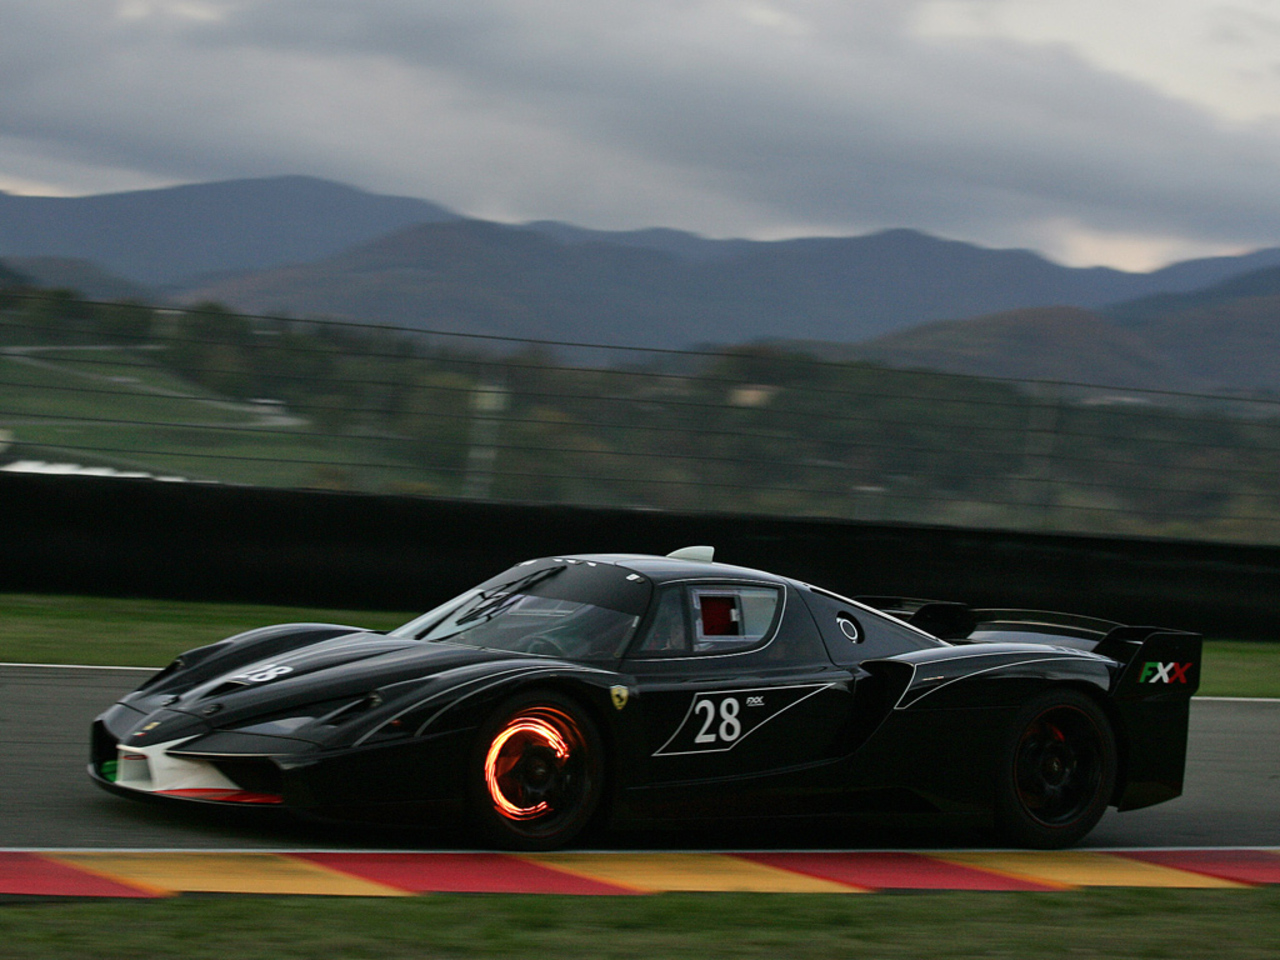 FXX Prototype at Mugello circuit